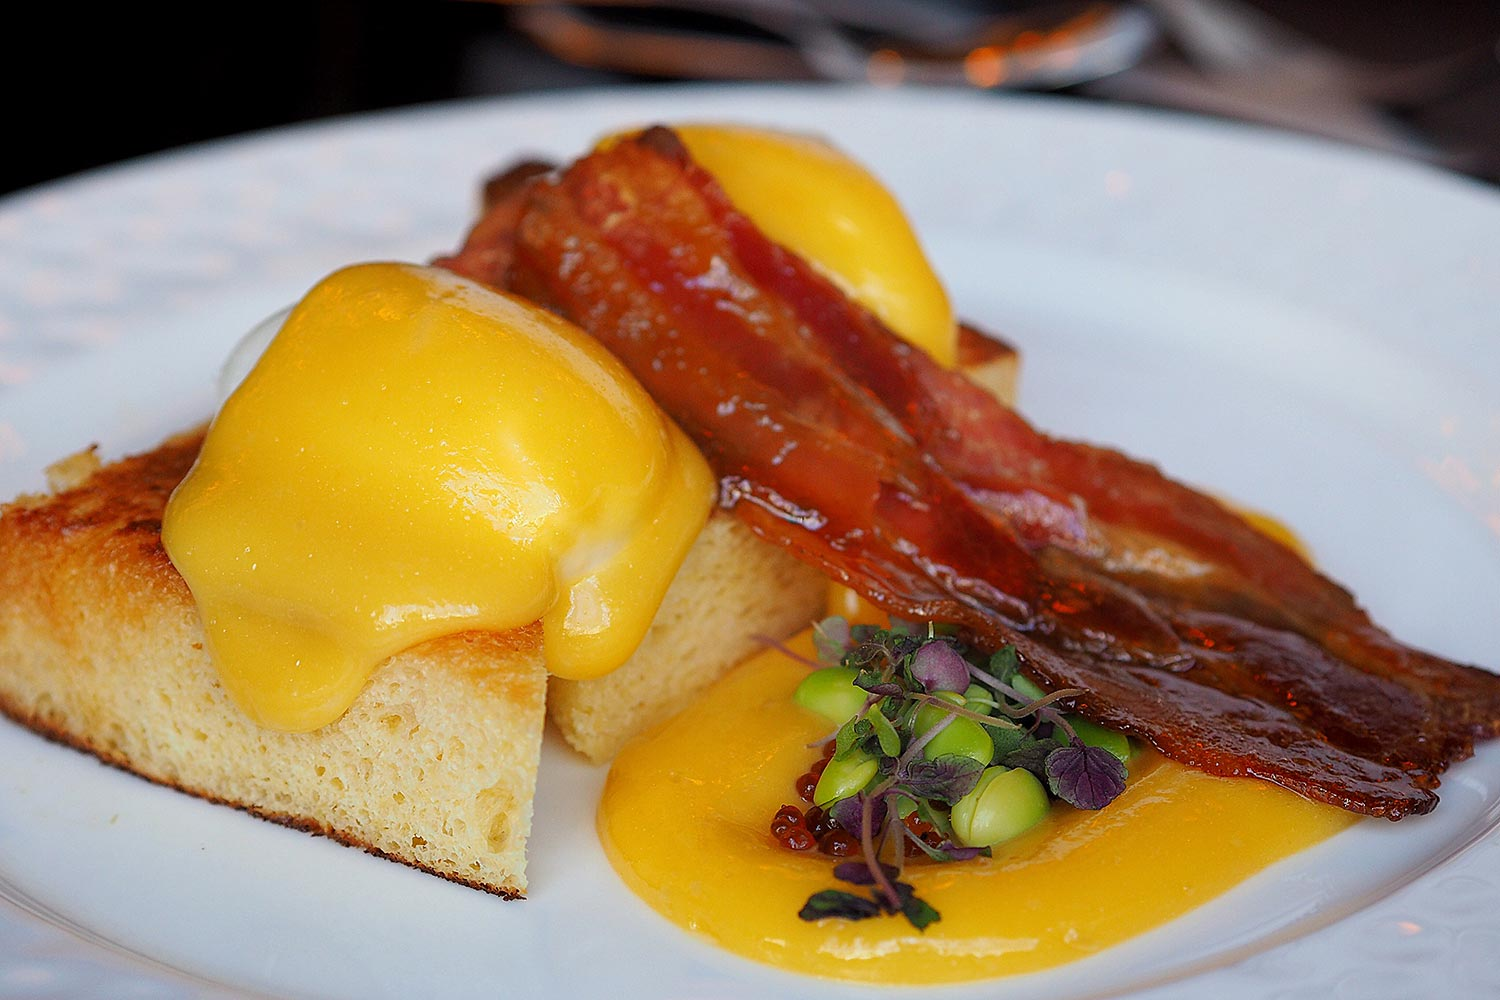 Sydney Food Blog Review of Sokyo, Pyrmont: Eggs Benedict